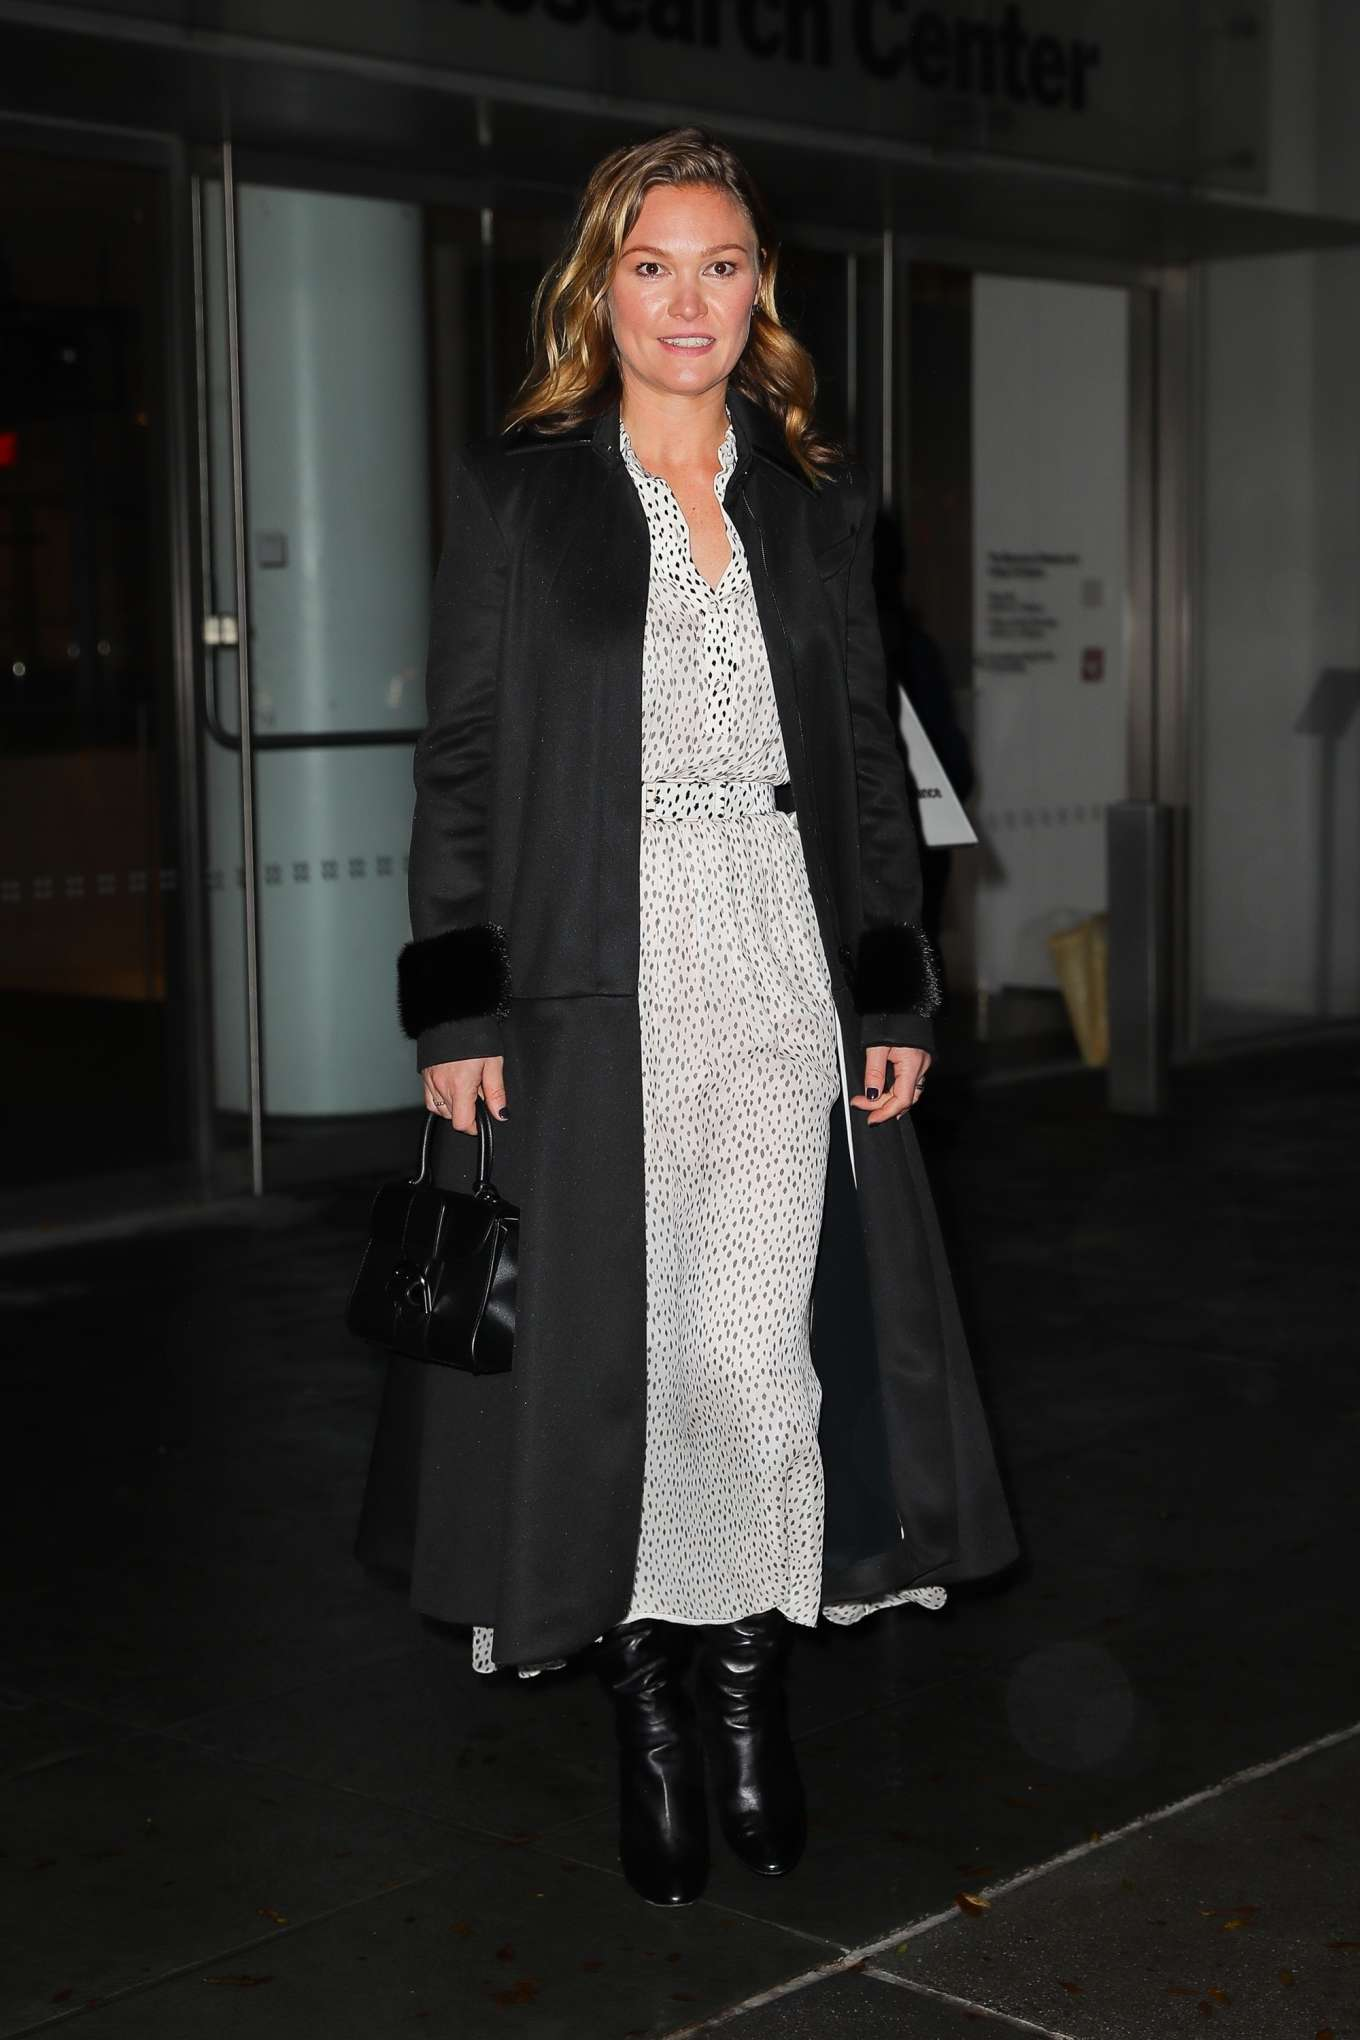 Julia Stiles 2019 : Julia Stiles – Leaving the Hustlers in New York-07